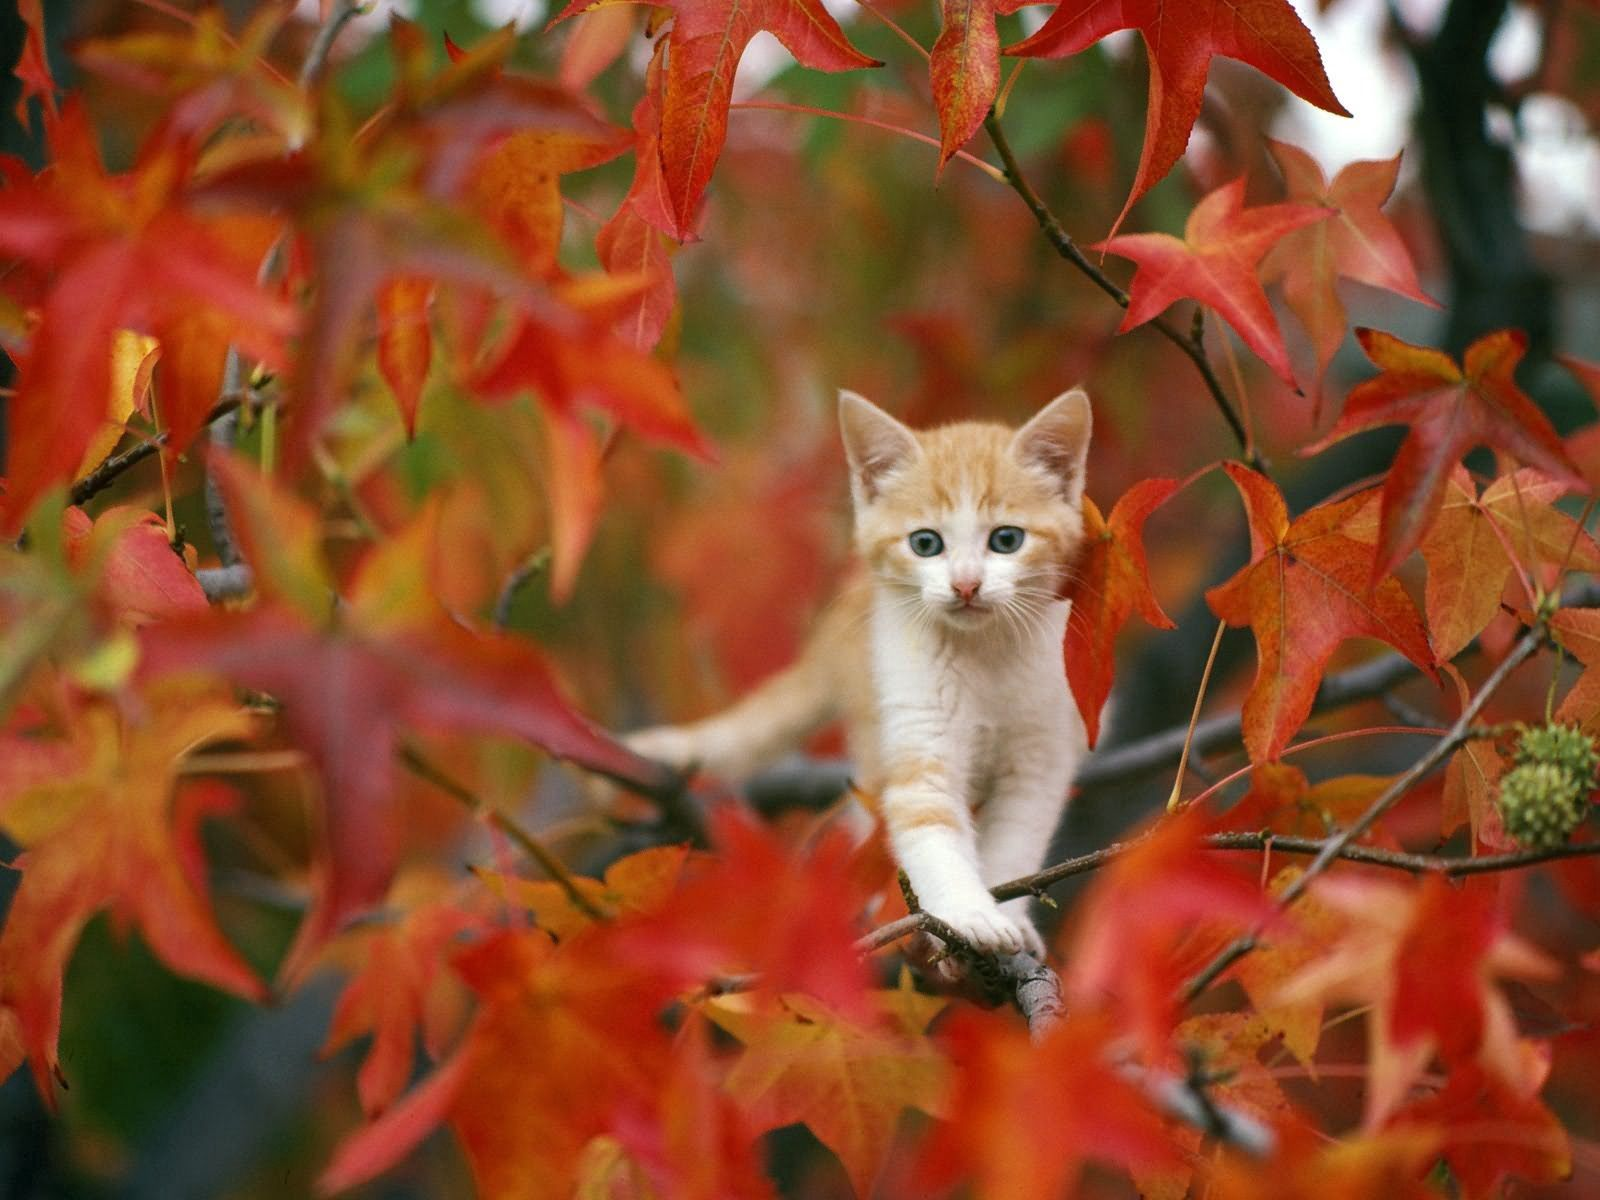 58130 download wallpaper Animals, Leaves, Kitty, Kitten, Hide screensavers and pictures for free